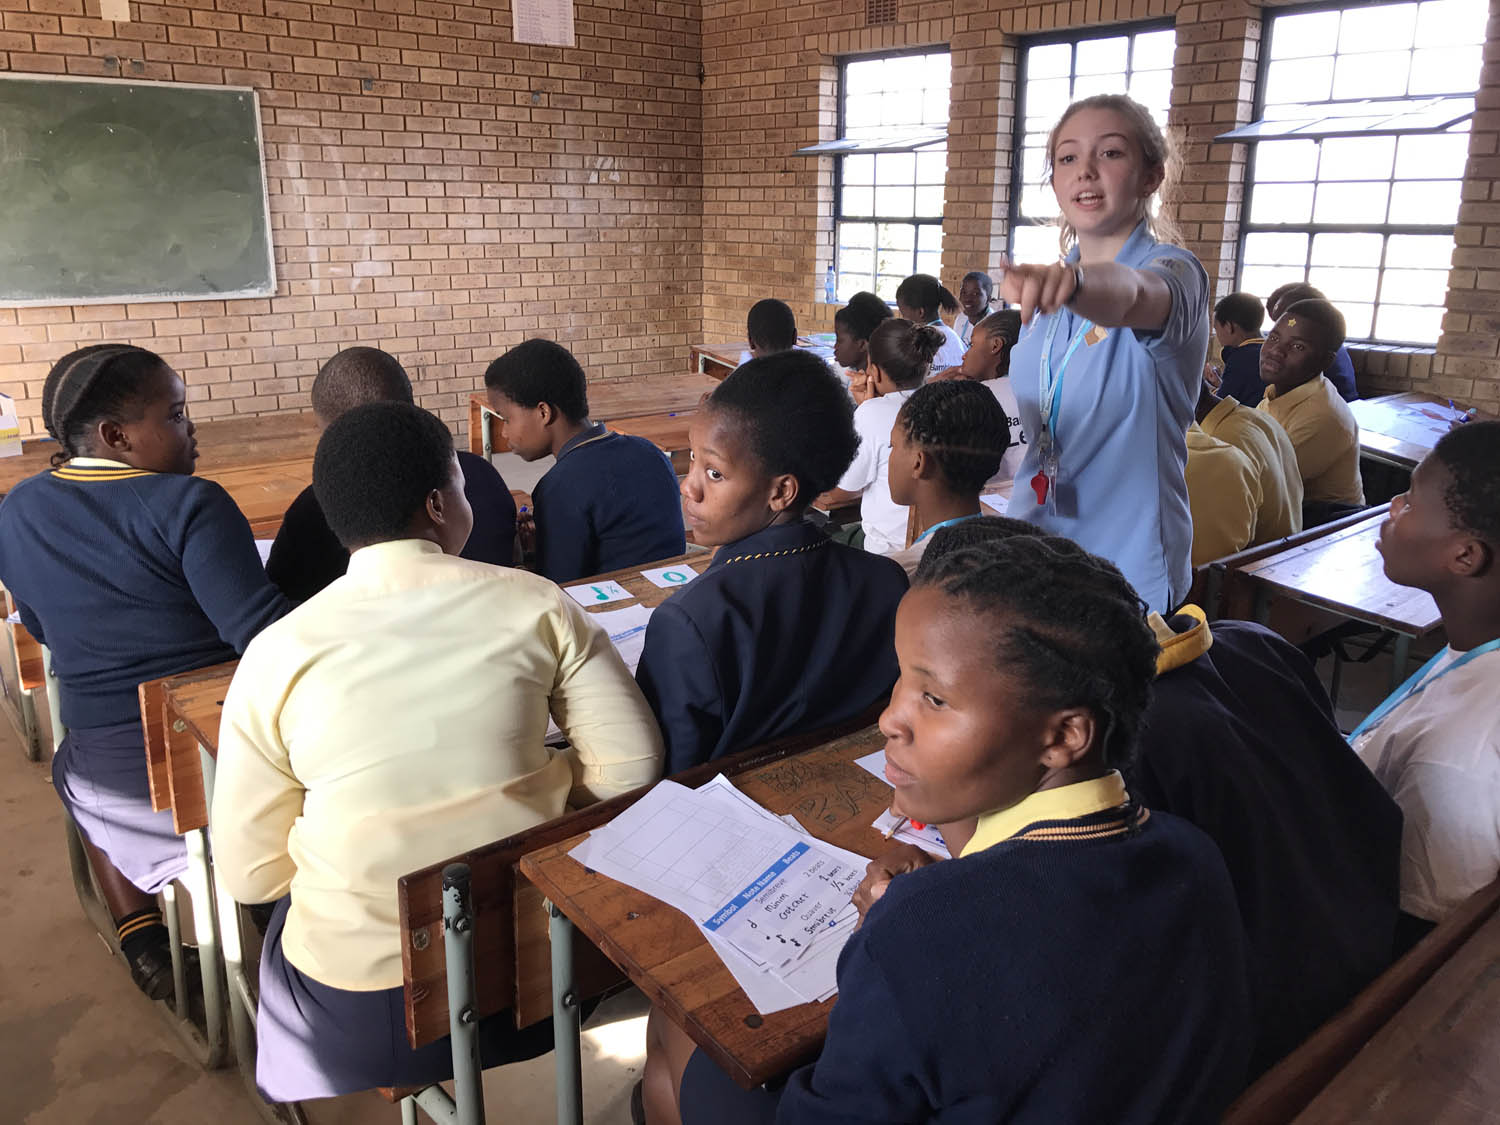 The 2017 South Africa Visit